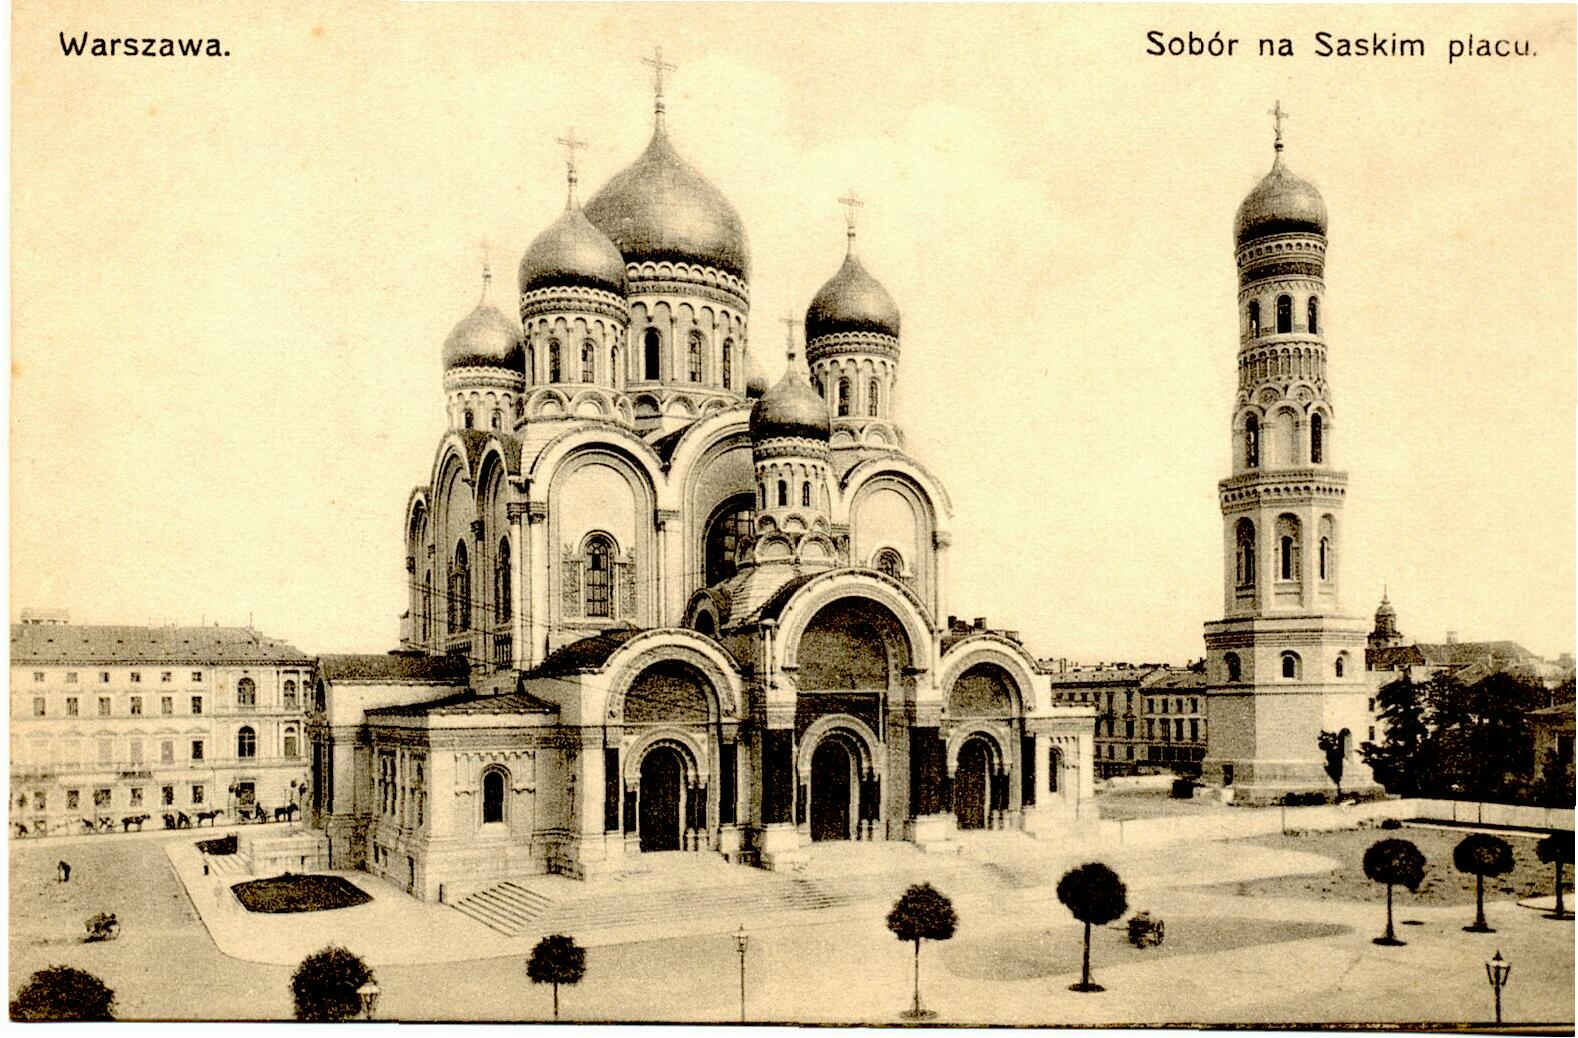 https://upload.wikimedia.org/wikipedia/commons/c/ca/Warszawa_Alexandro-Nevsky_sobor_1910-e_01.jpg